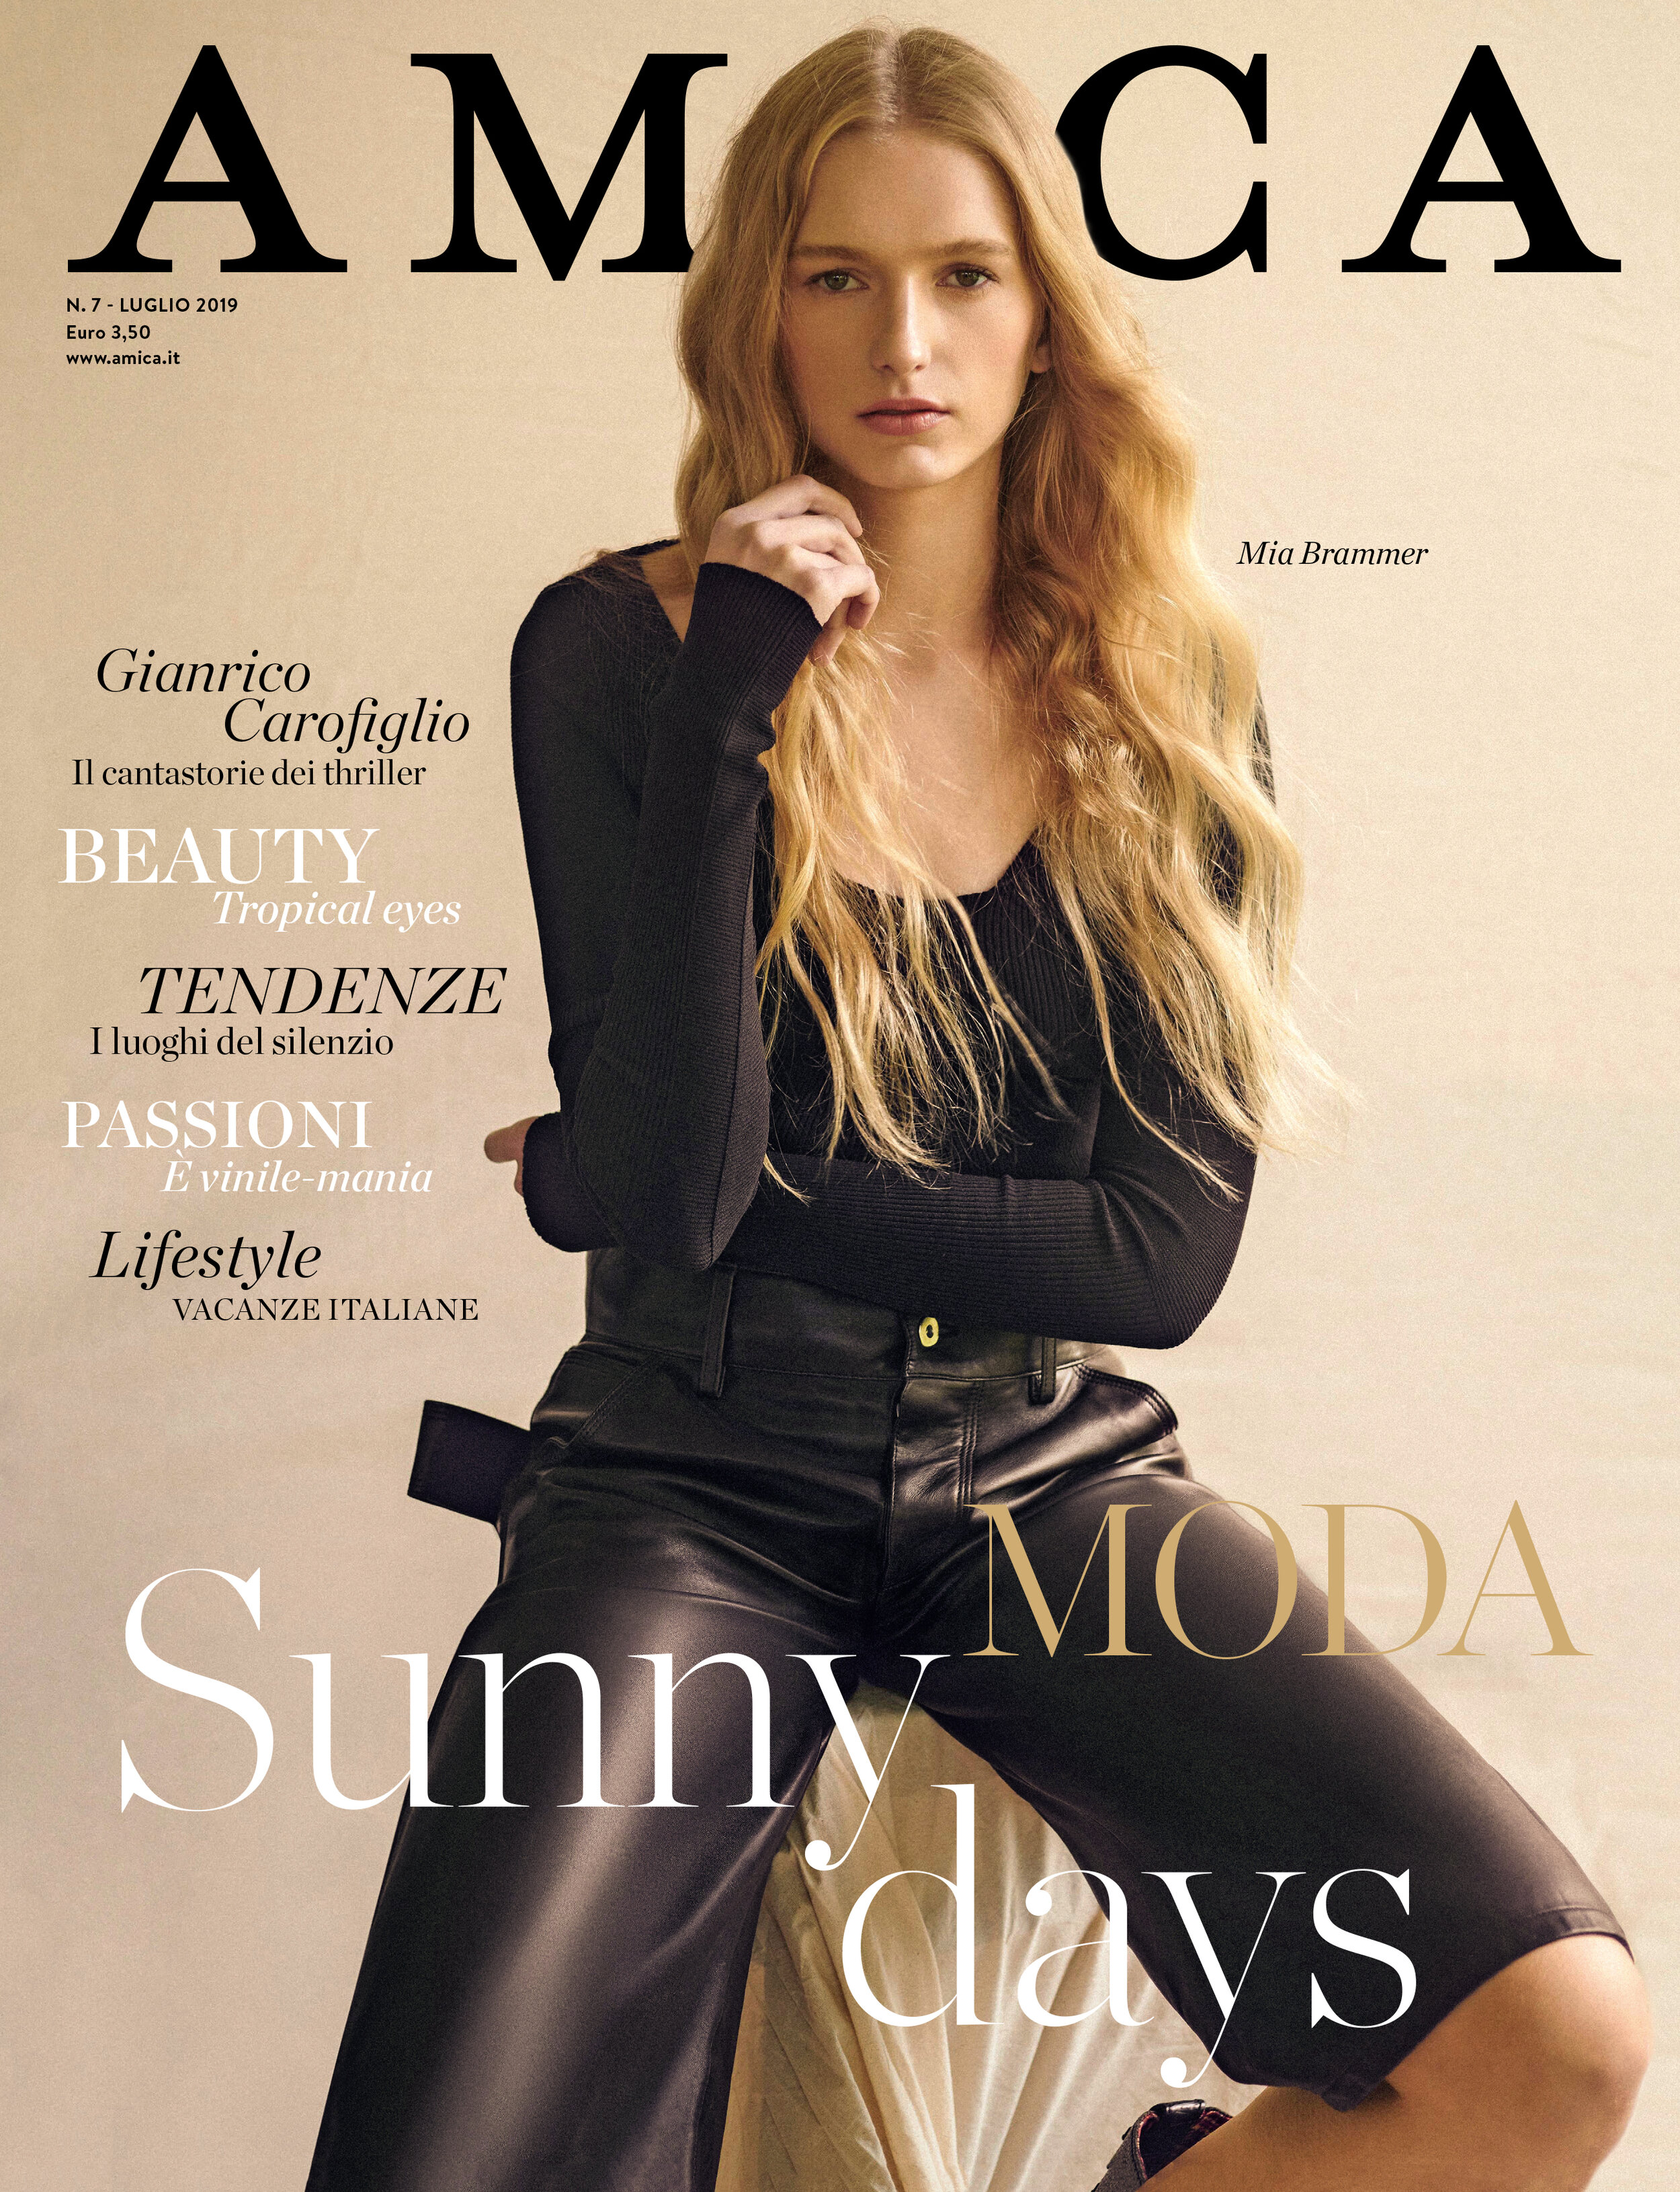 07 Amica Cover.jpg